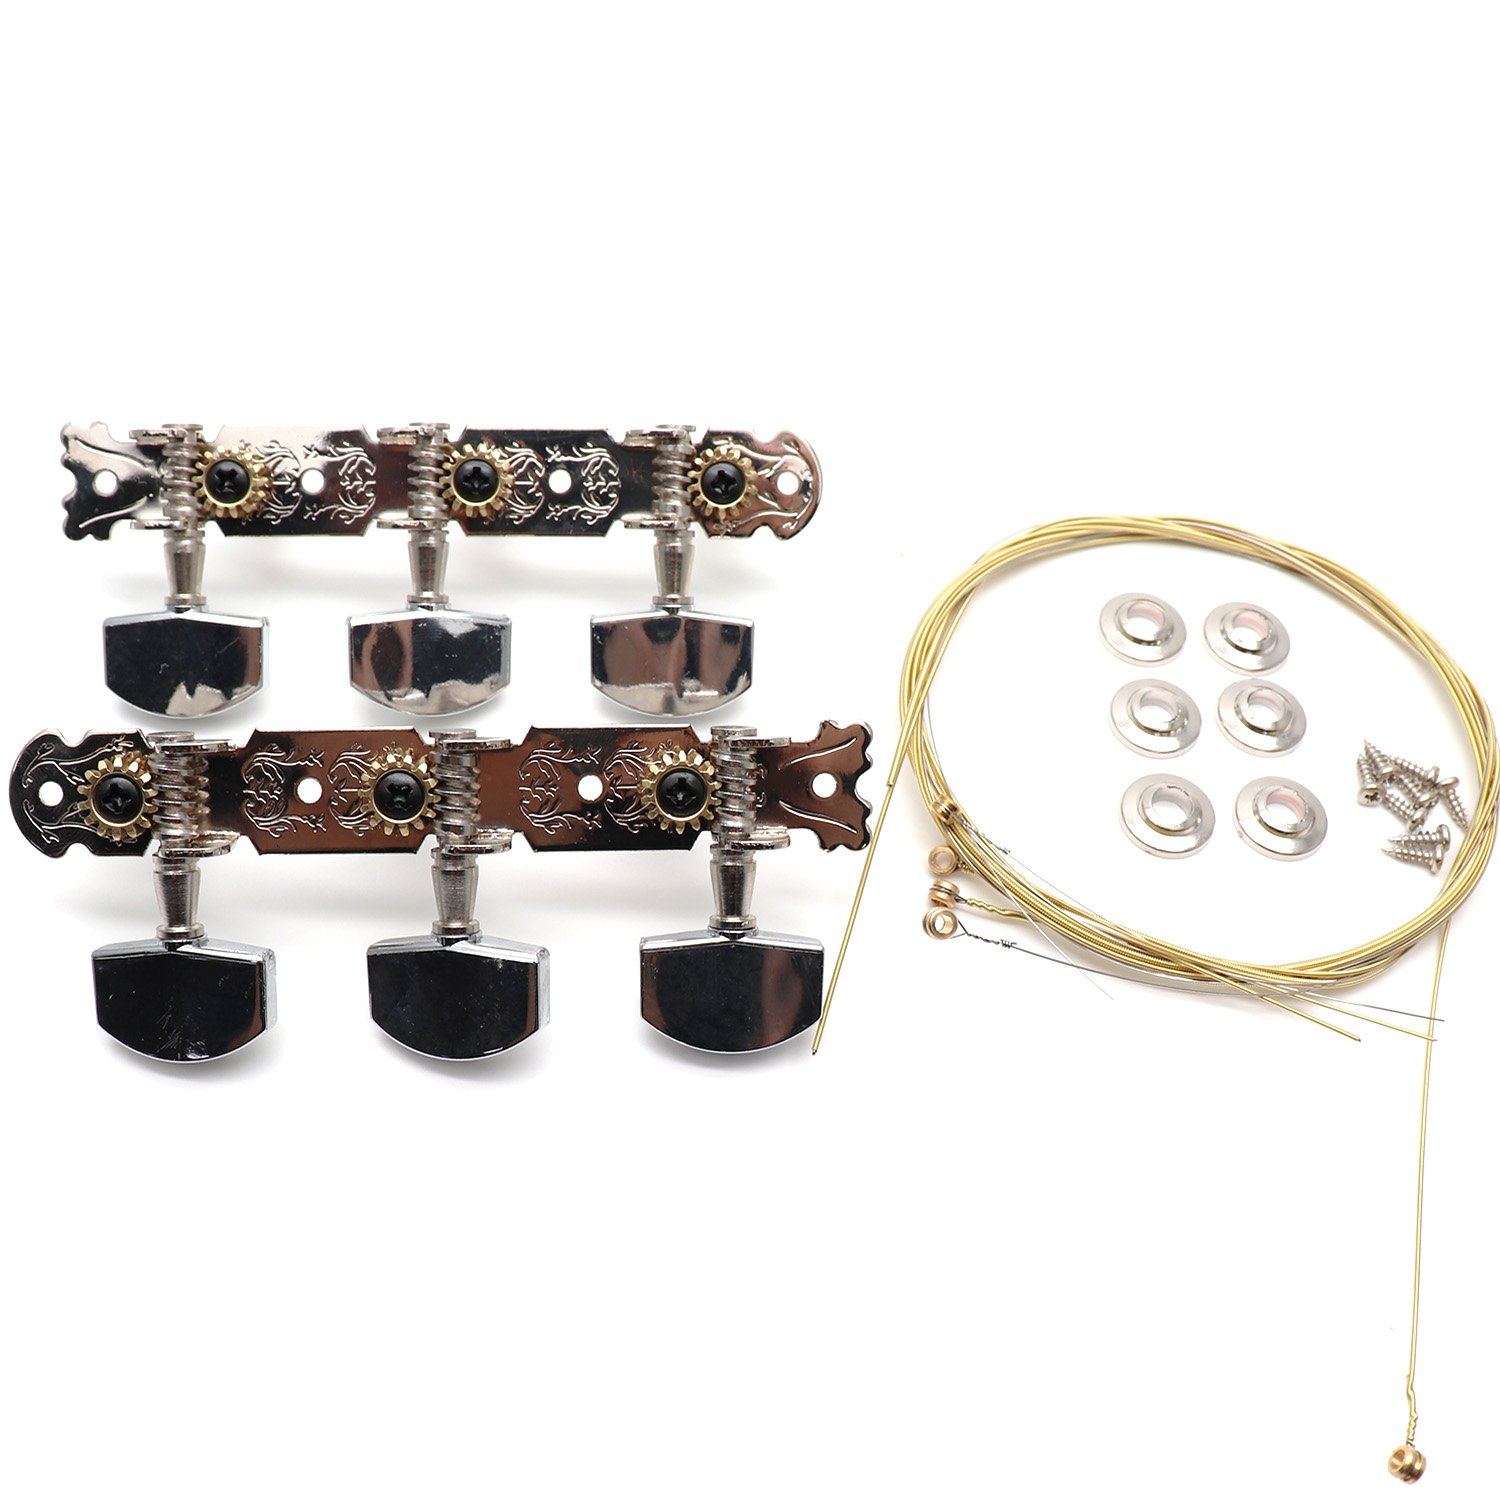 Timiy Set of 2 Guitar Tuning Keys-3 Left 3 Right Classical Guitar Tuners Tuning Pegs Keys Machine Heads, Guitar Strings Included